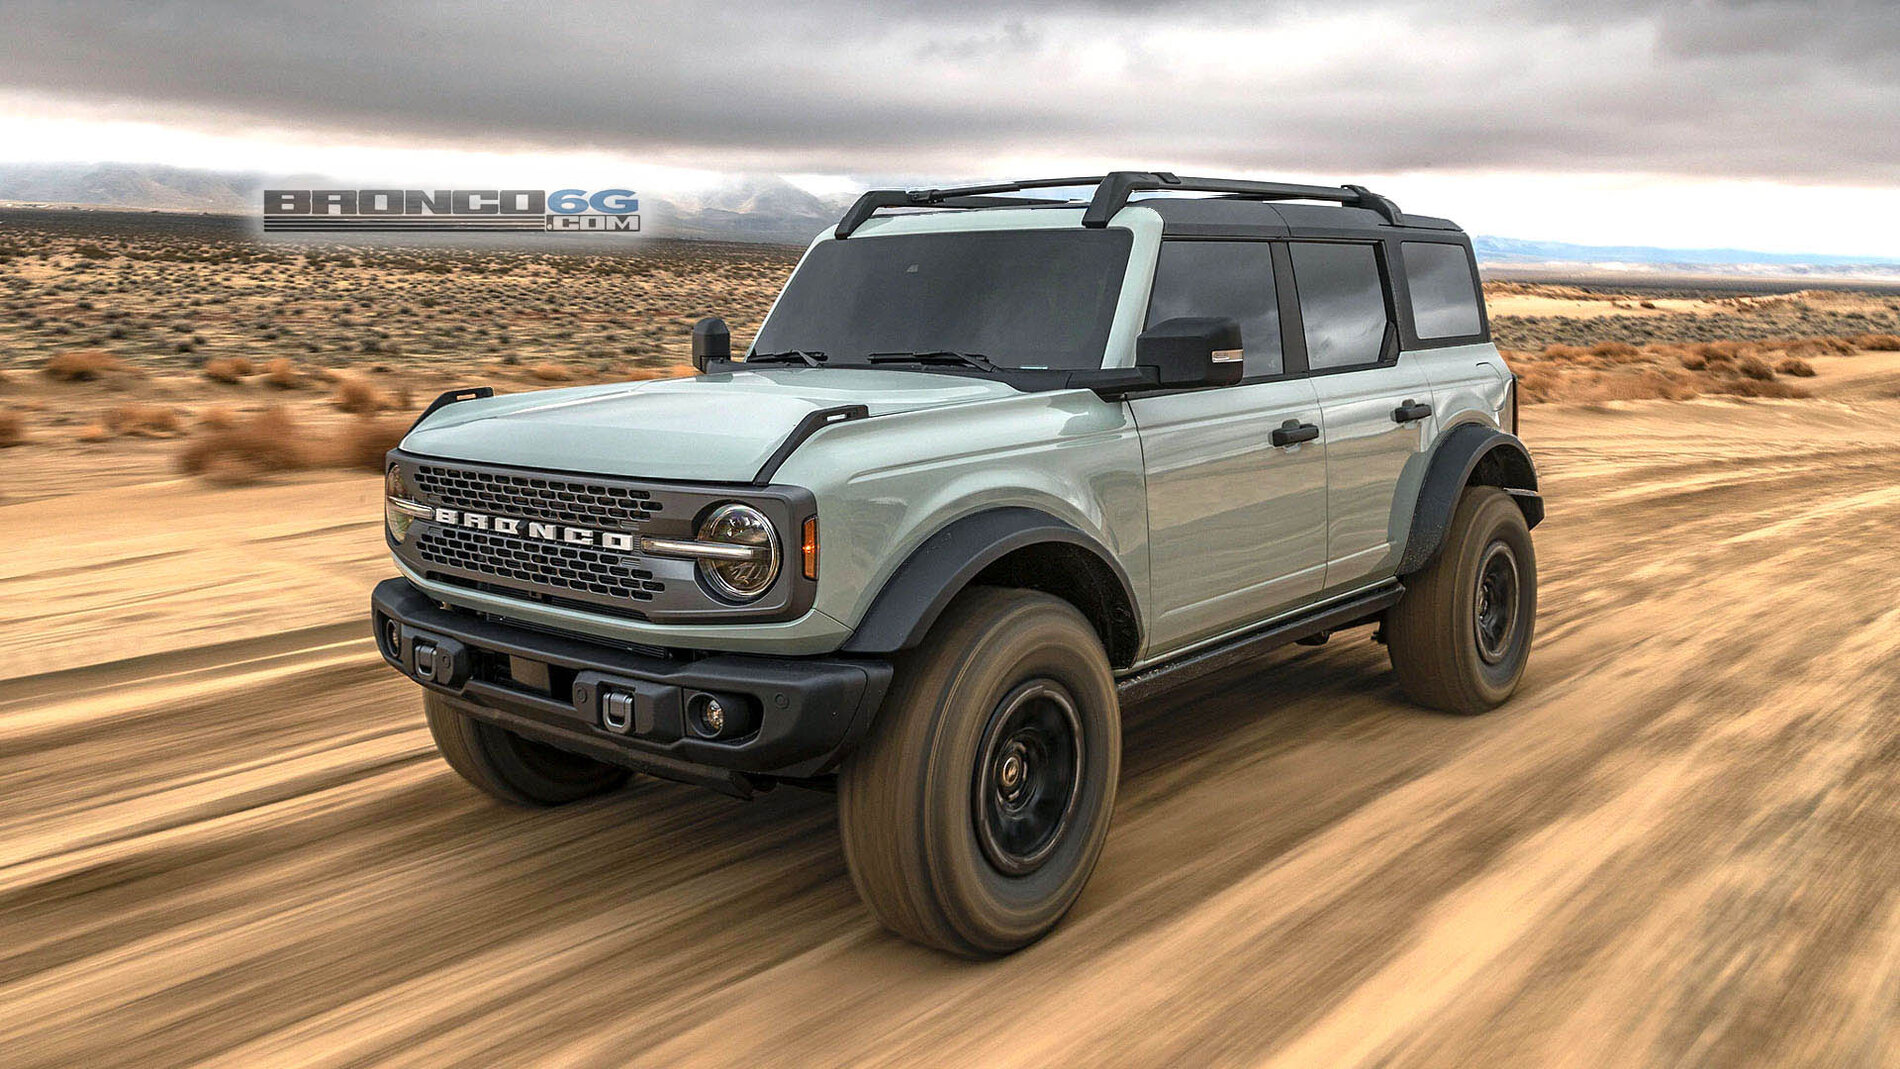 2021 Ford Bronco Sasquatch Cactus-gray-factory-black-top-fendersBronco6G.com.jpg